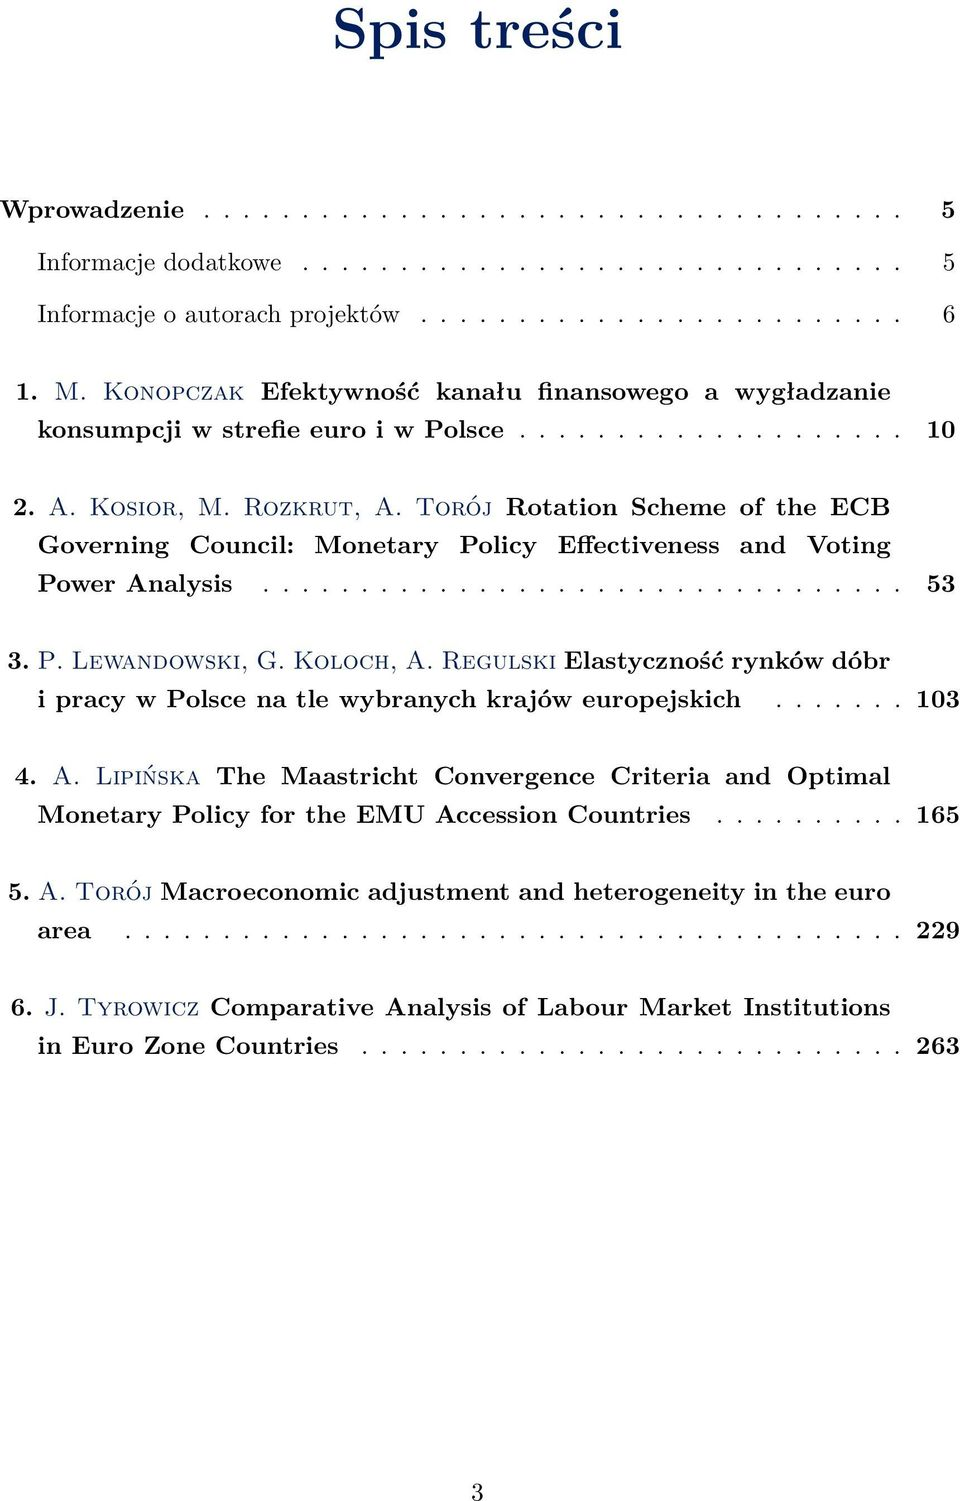 Torój Rotation Scheme of the ECB Governing Council: Monetary Policy Effectiveness and Voting Power Analysis................................. 53 3. P. Lewandowski, G. Koloch, A.